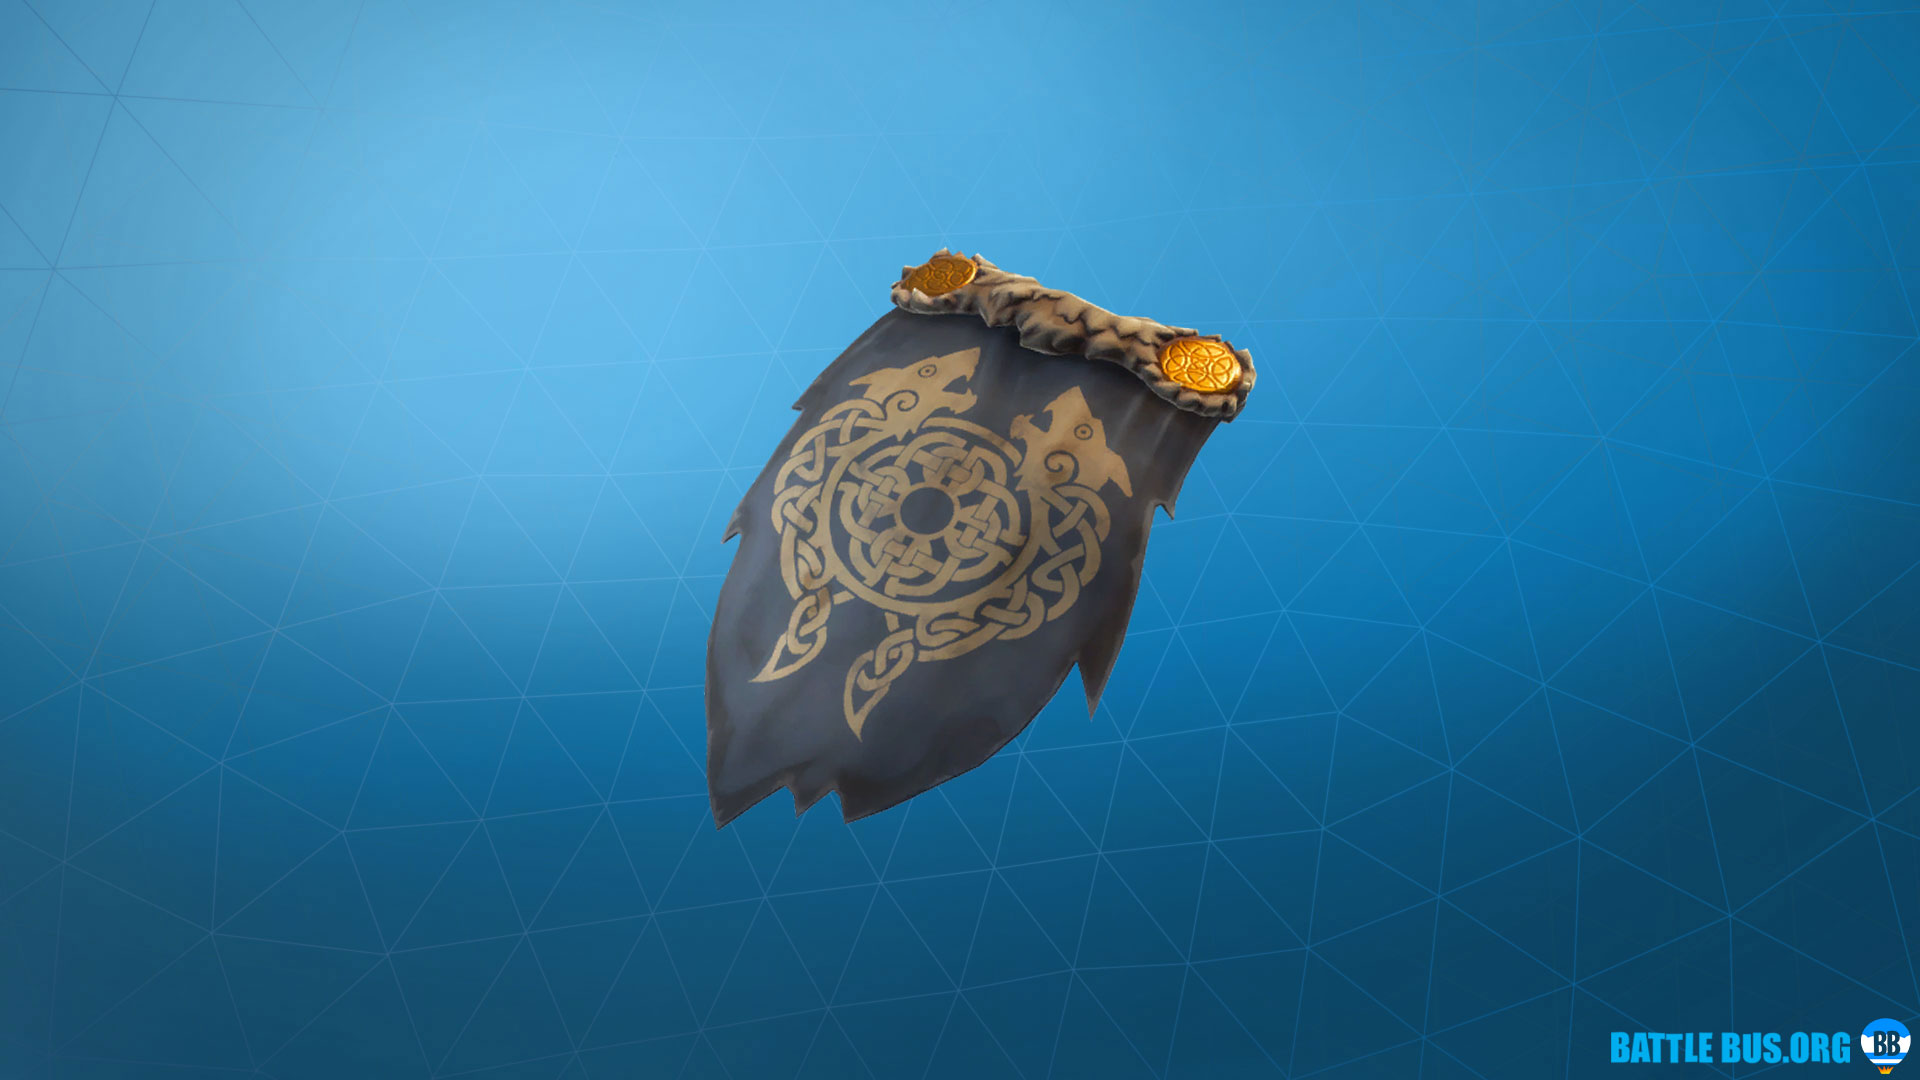 Fortnite Cape crested cape - back bling - laoch set - fortnite news, skins